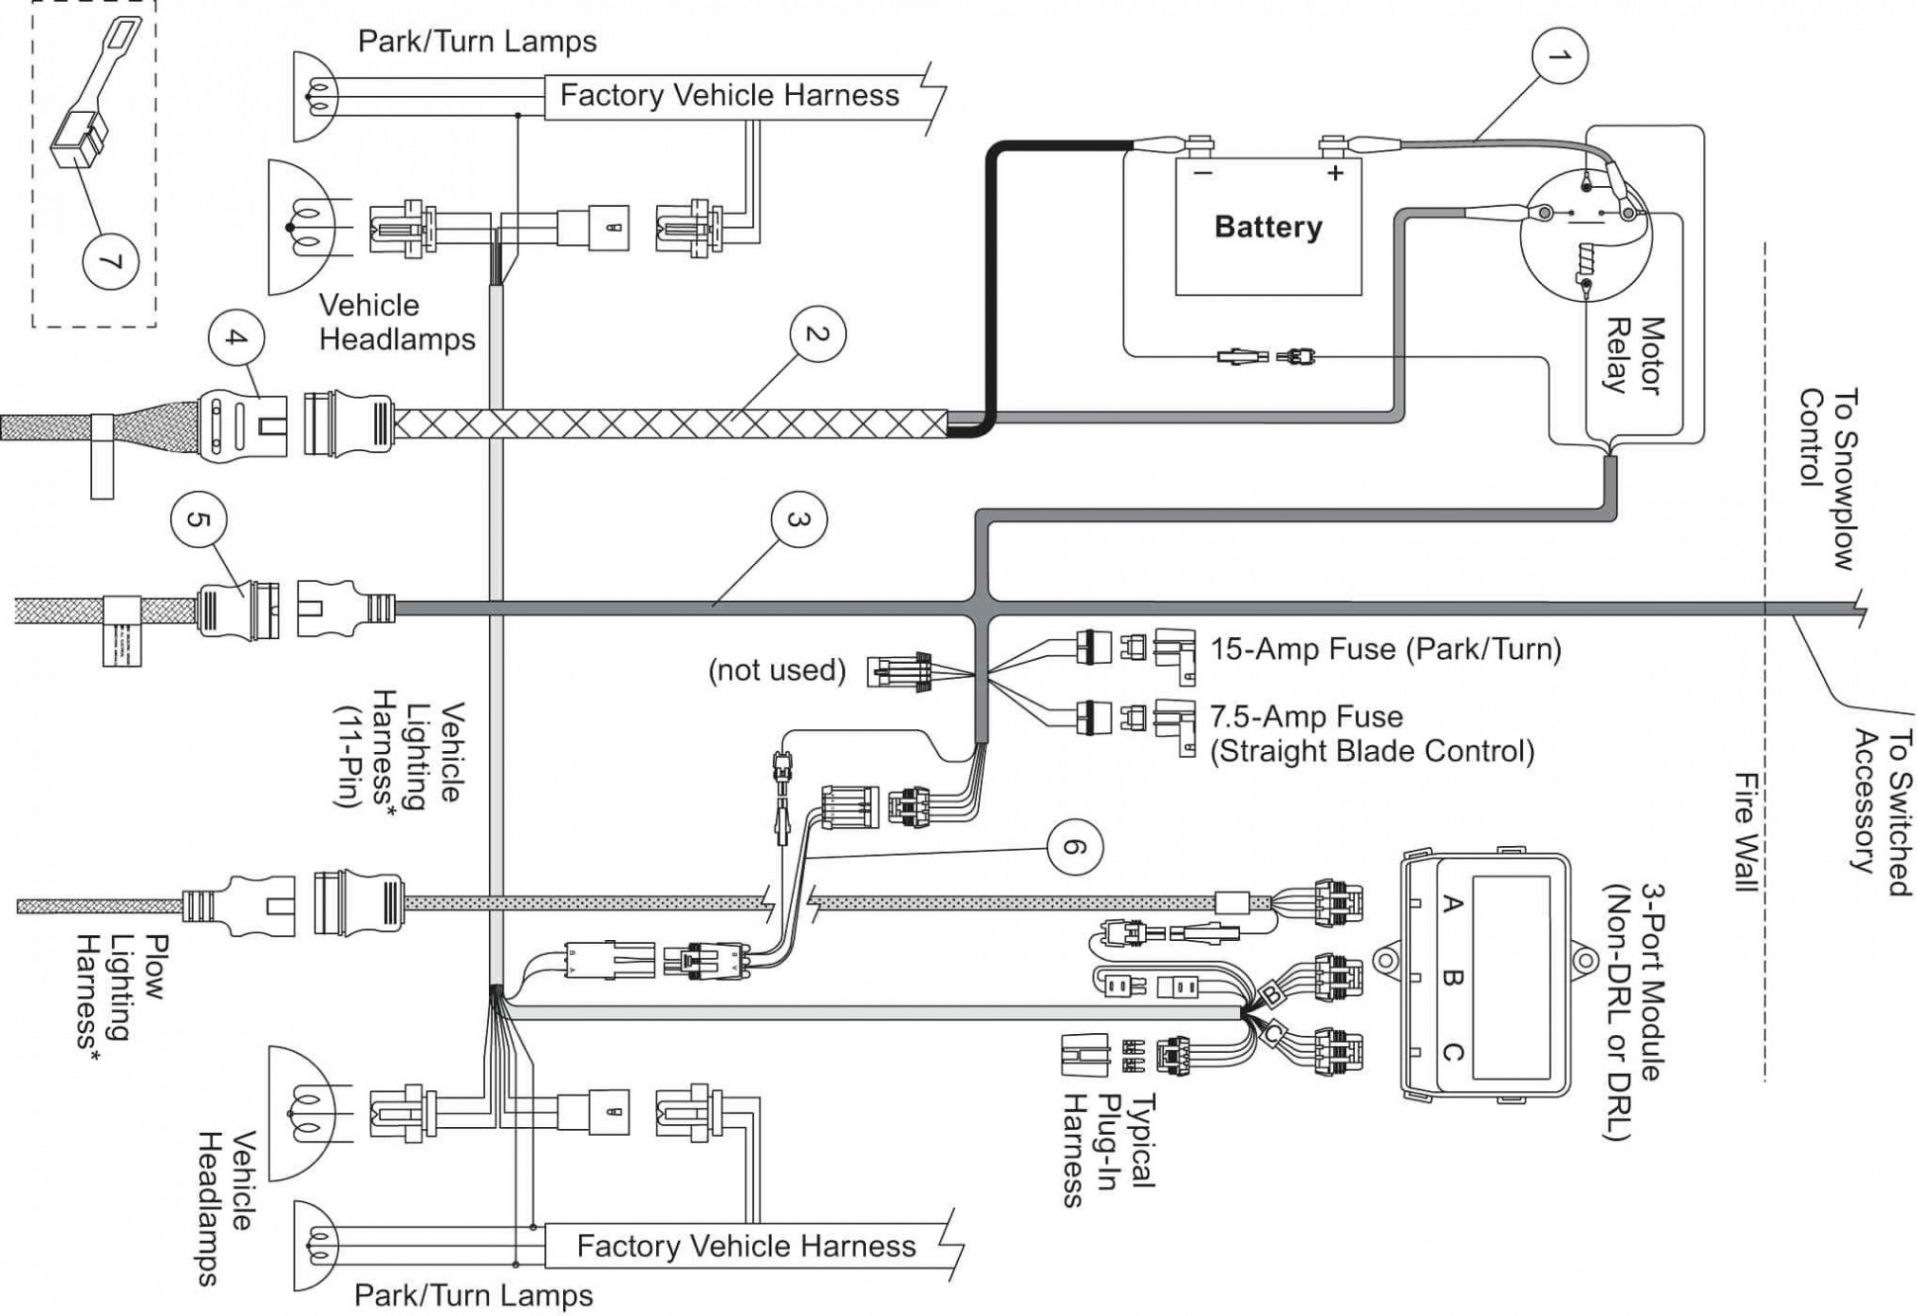 Wiring Diagram For Meyers Snow Plow New Meyer Plow Wiring Diagram - Meyers Snowplow Wiring Diagram